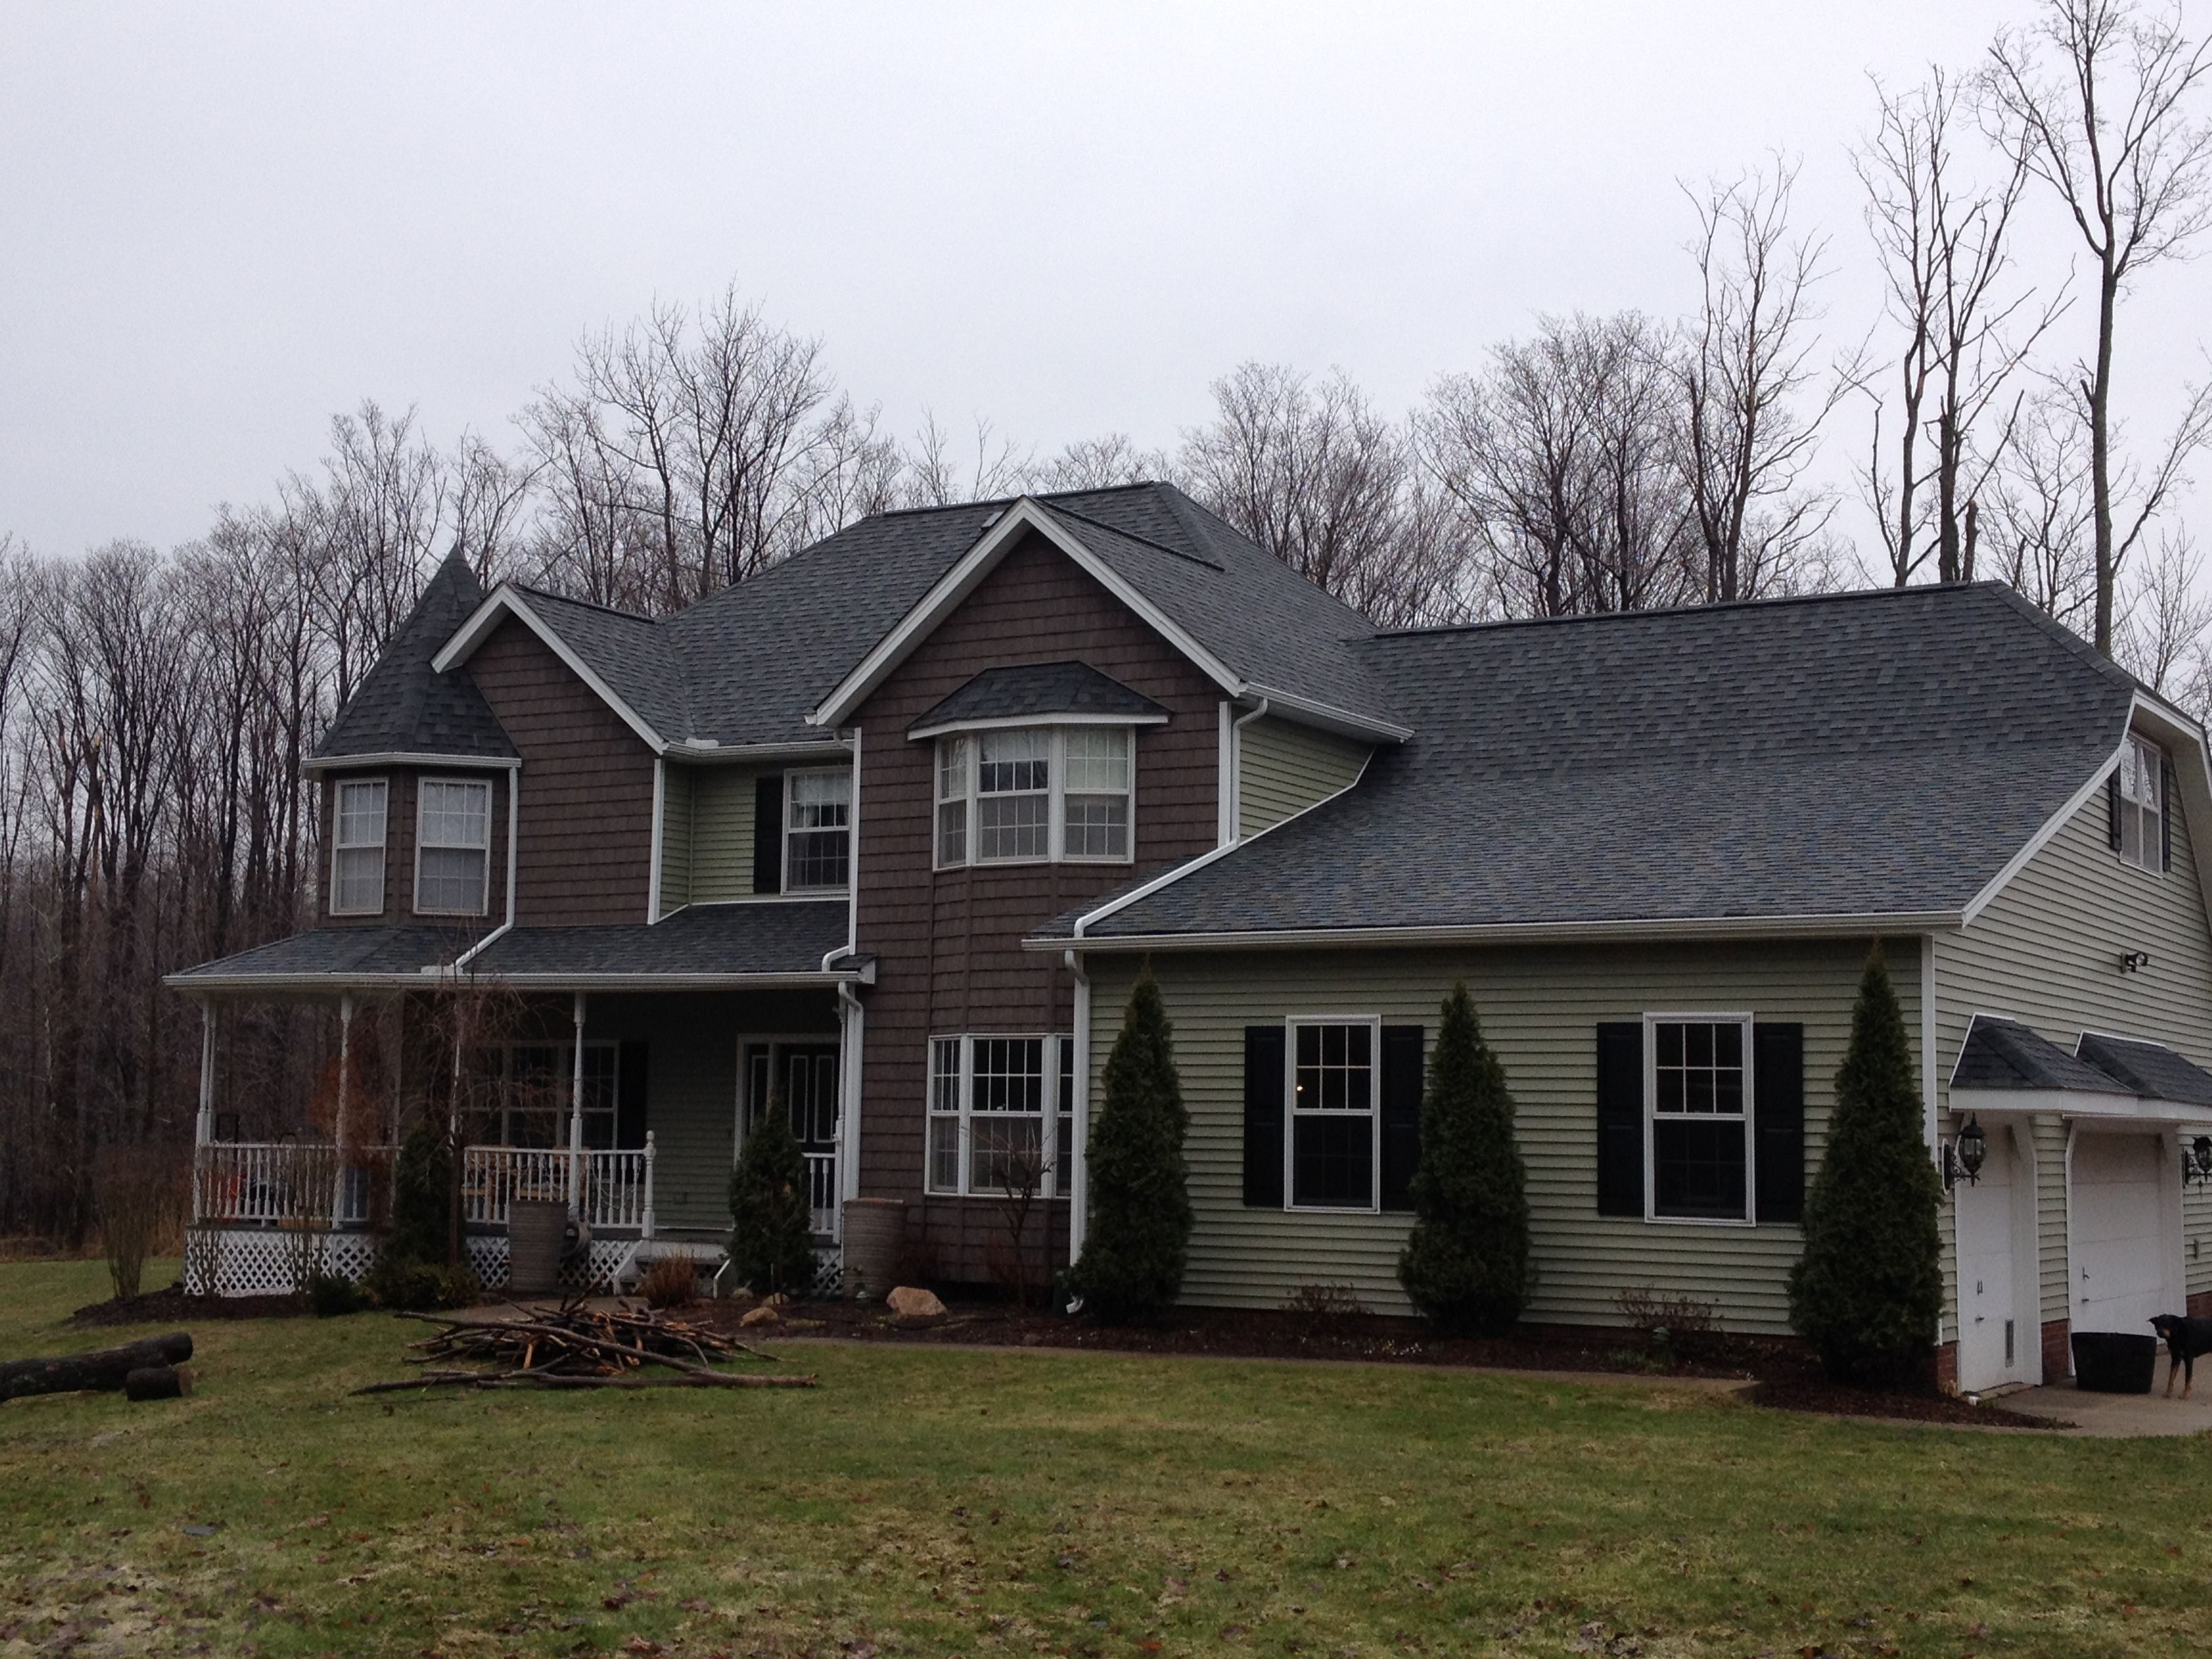 Beautiful Custom Siding Job Just Finished In Chardon Ohio This Home Features Certainteed Double 7 Rough Split Shakes In Sab House Exterior House Styles Home